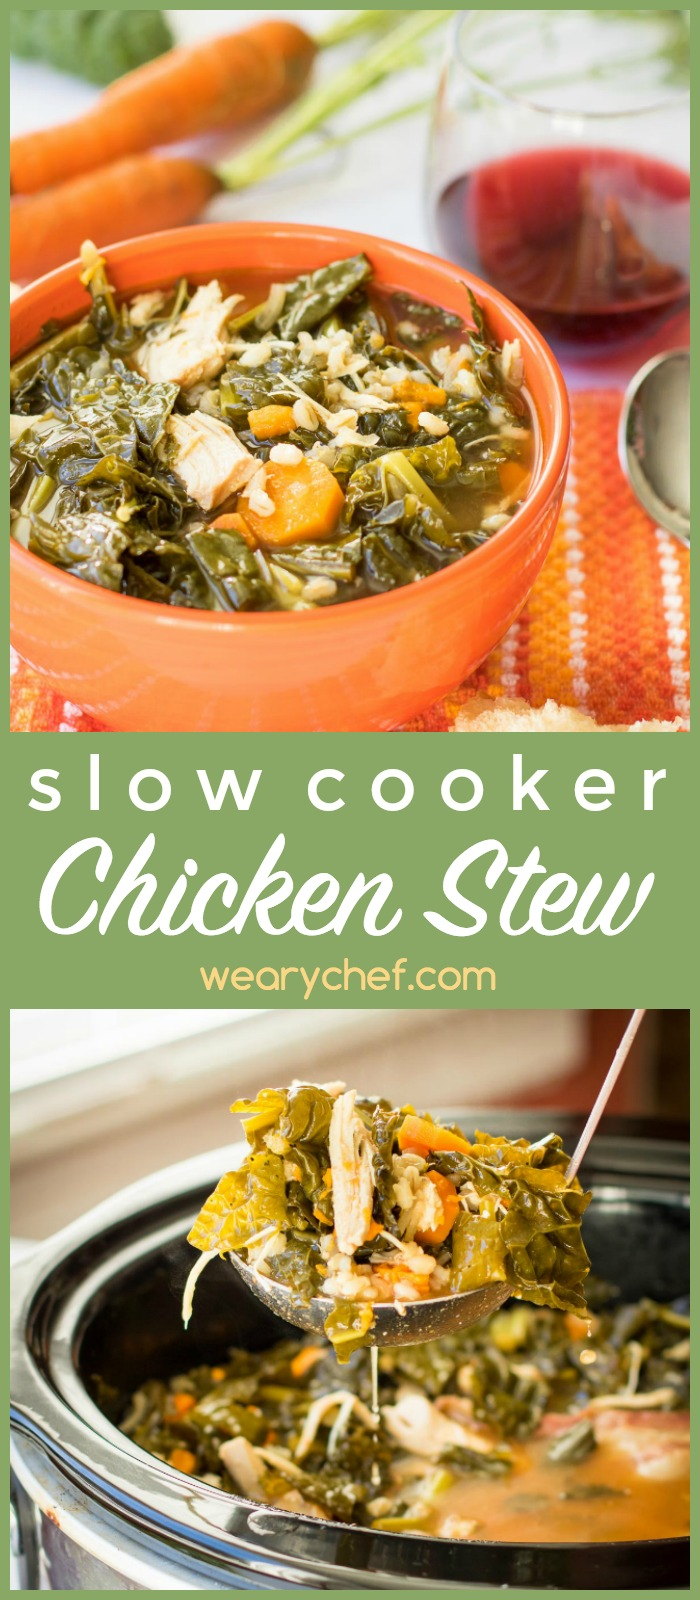 This crock pot chicken stew is loaded with lean chicken and healthy veggies like kale sweet potatoes! It's a perfect slow cooker dinner recipe for cool days.